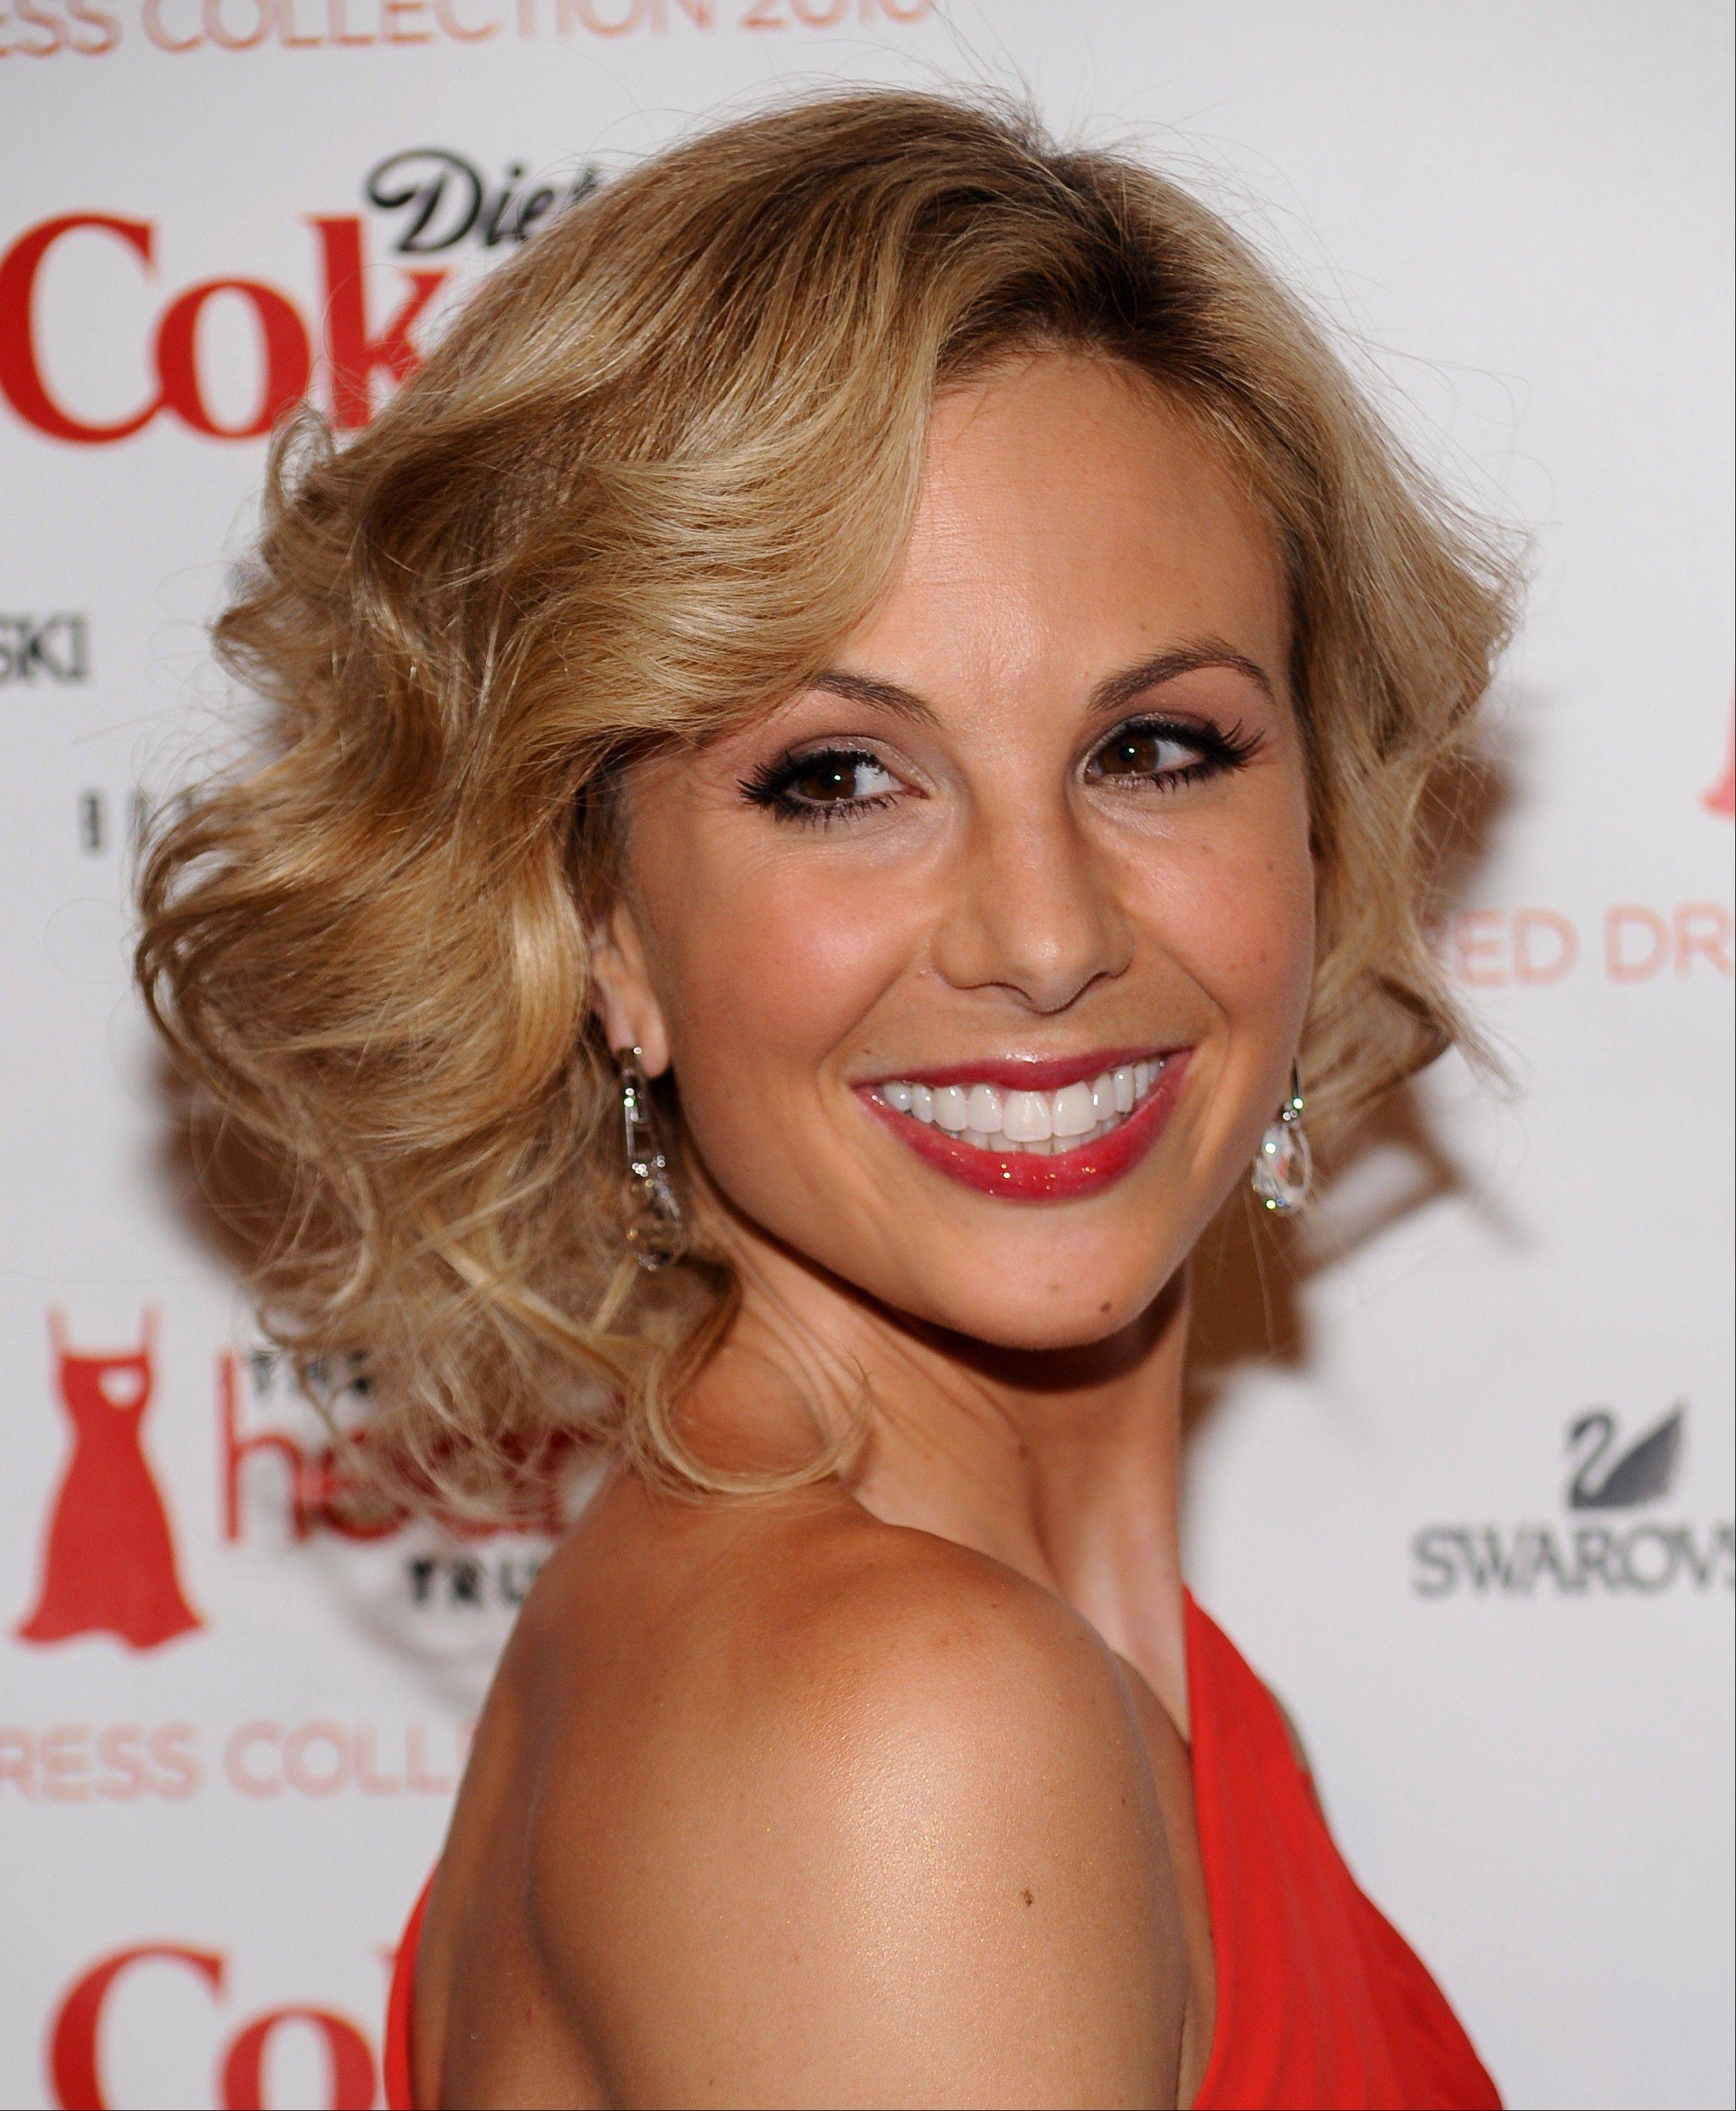 "In this Feb. 11, 2010 file photo, television personality Elisabeth Hasselbeck arrives at The Heart Truth's Red Dress Collection 2010 fashion show in New York. Hasselbeck is leaving the desk at ""The View"" for the couch on Fox News Channel�s ""Fox & Friends."" The news network said Tuesday, July 9, 2013, that Hasselbeck, who has been on Barbara Walters' syndicated daytime show for a decade, will join co-anchors Steve Doocy and Brian Kilmeade on Fox�s morning show in September."